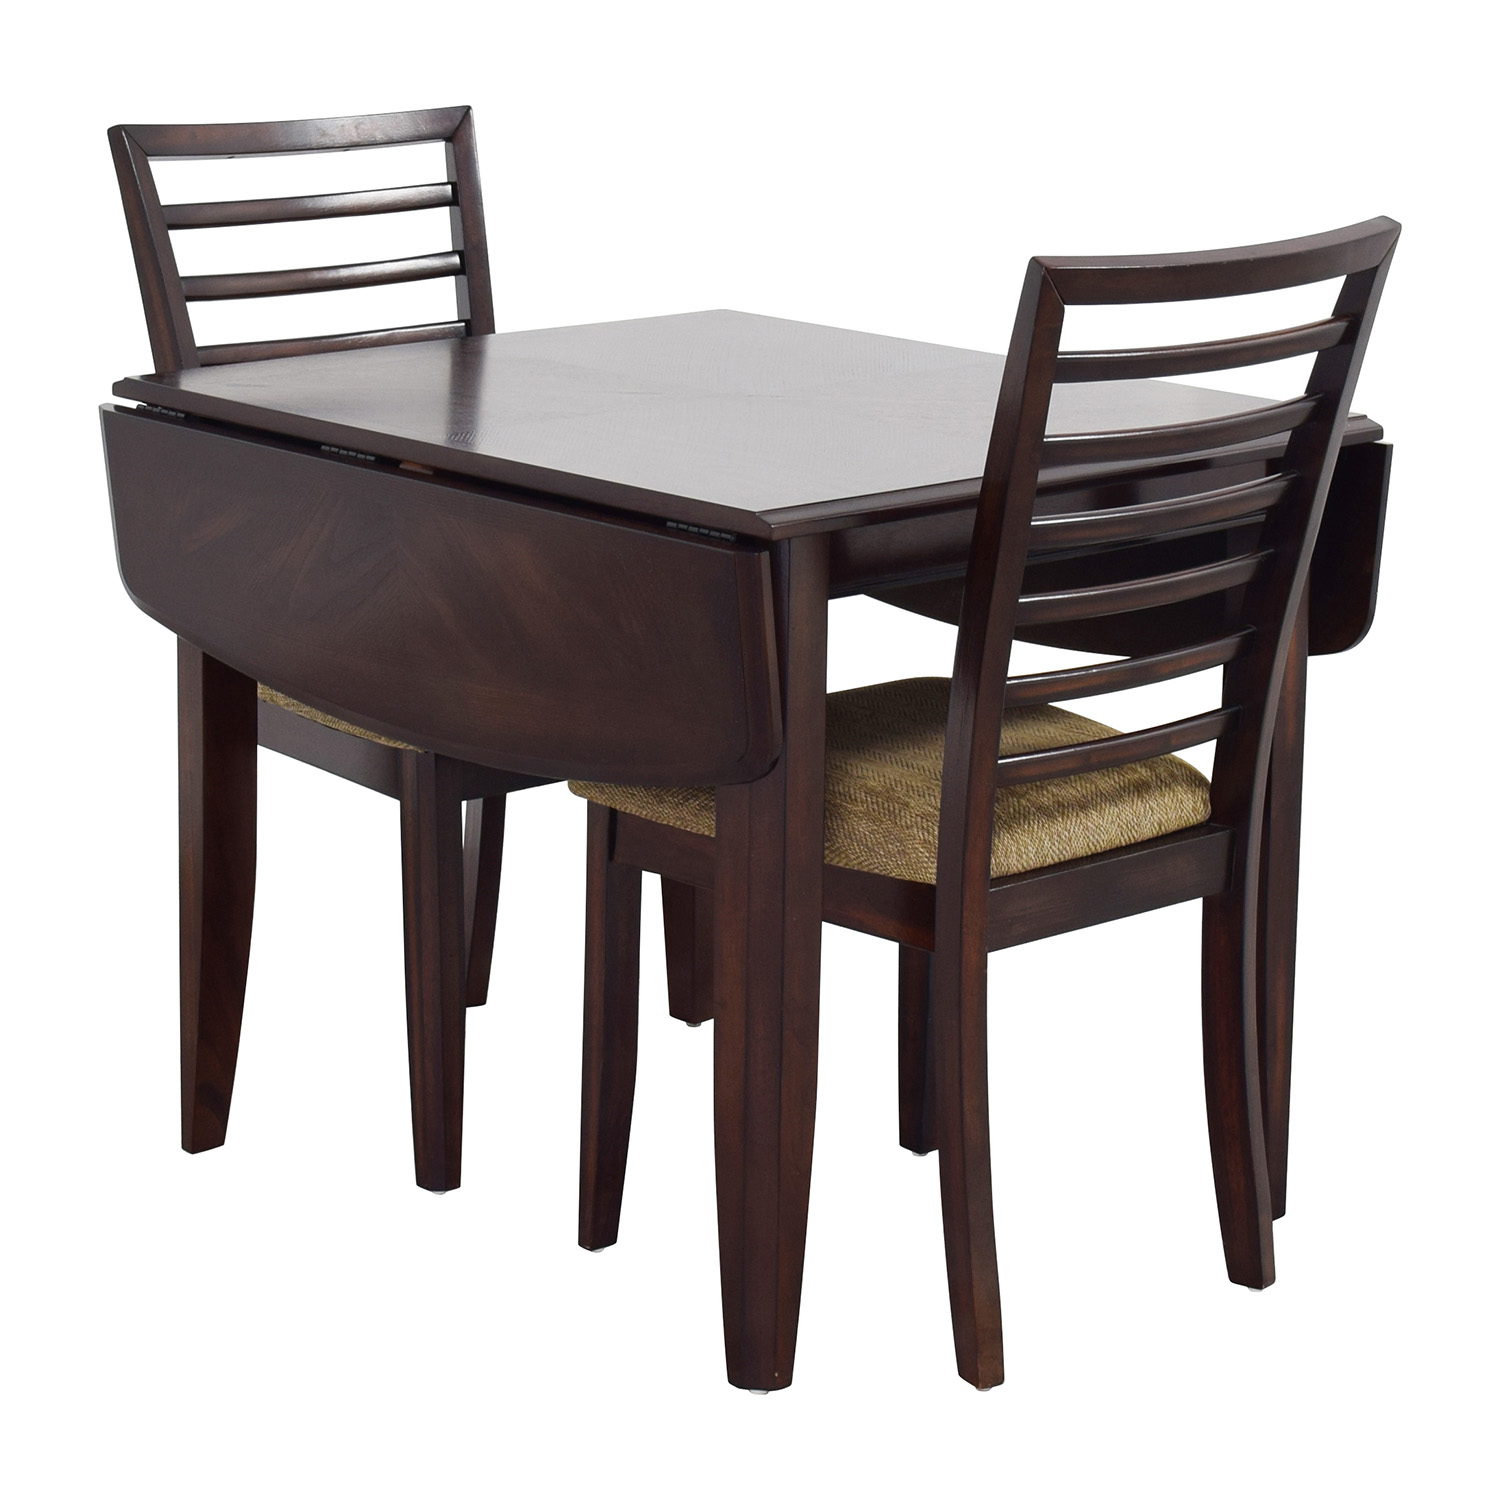 Raymour & Flanigan Raymour & Flanigan Chace Extendable Dining Set